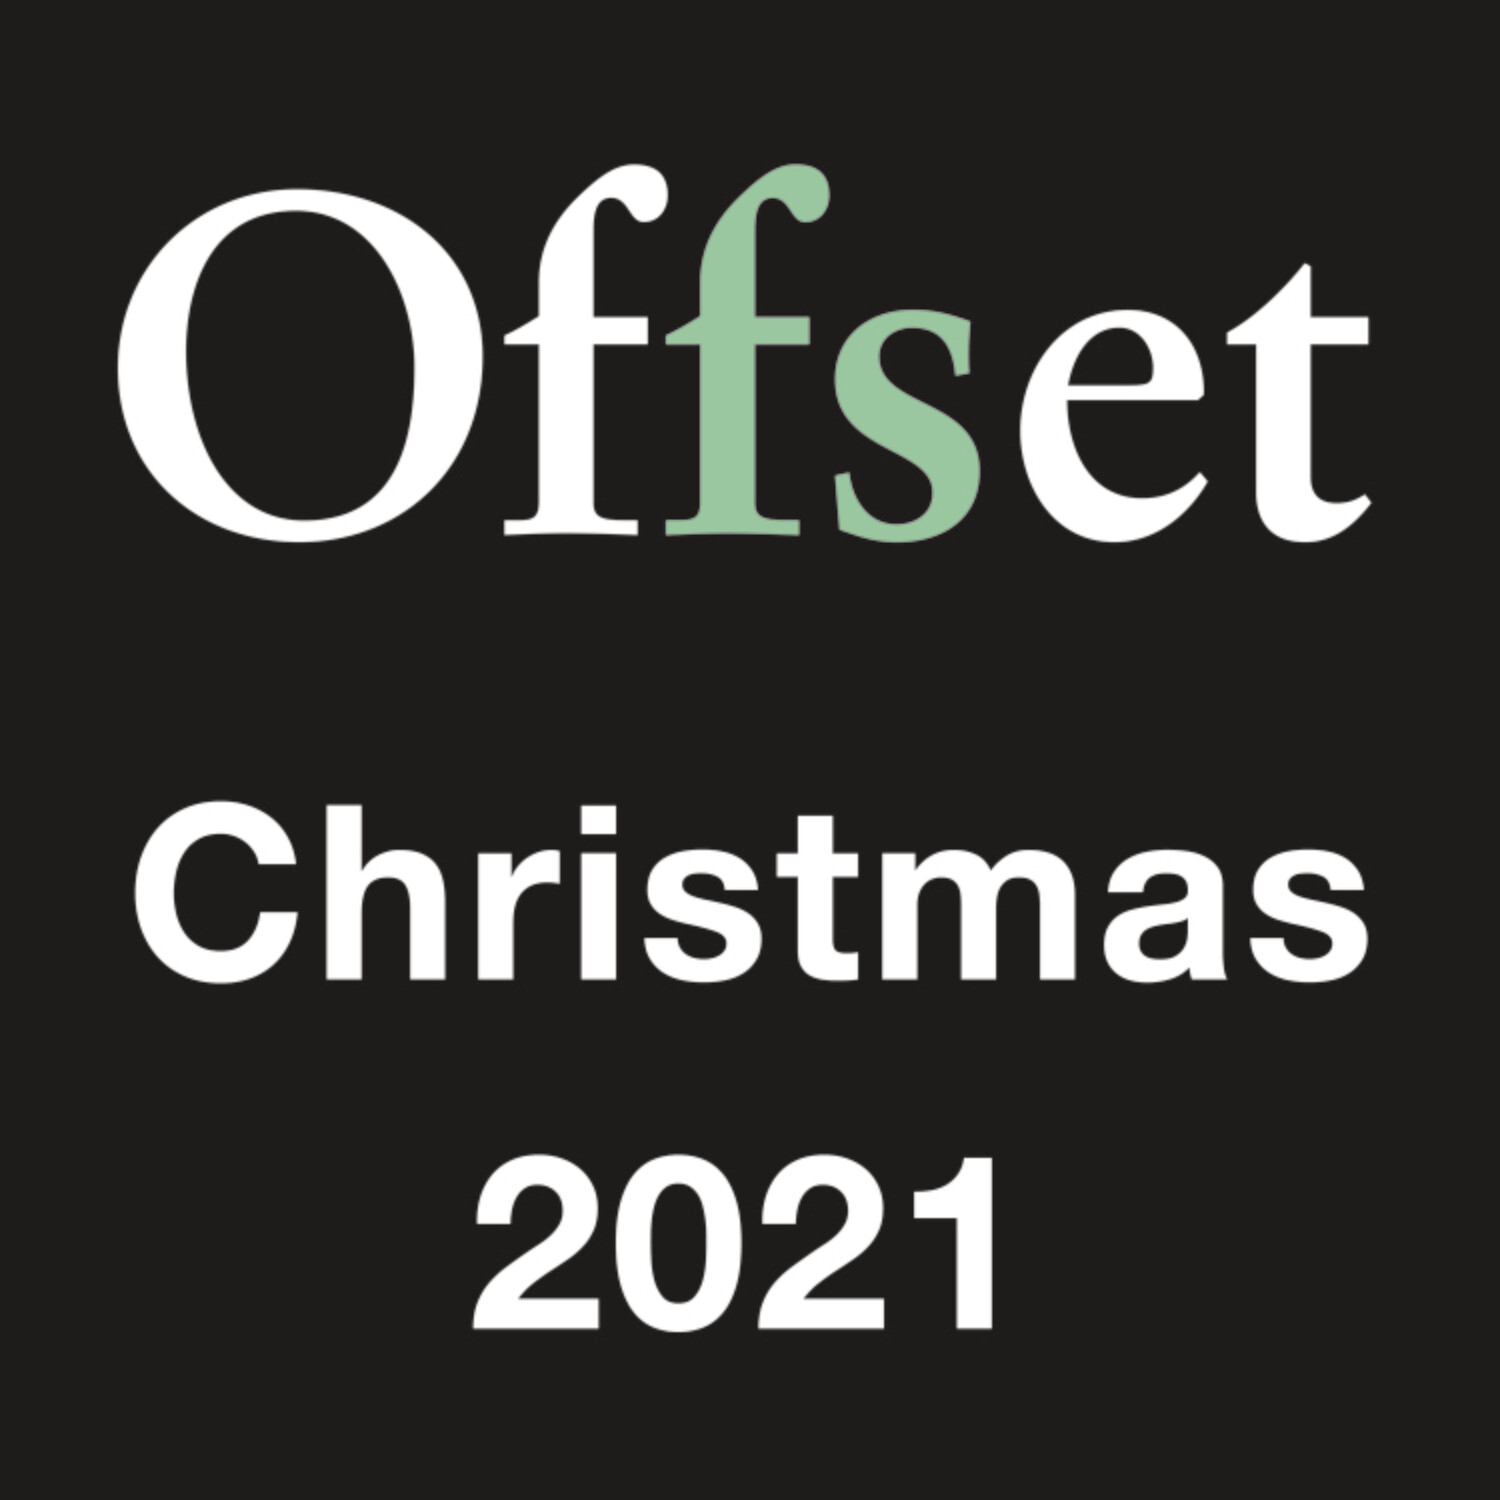 Christmas 2021 Offset Catalogue